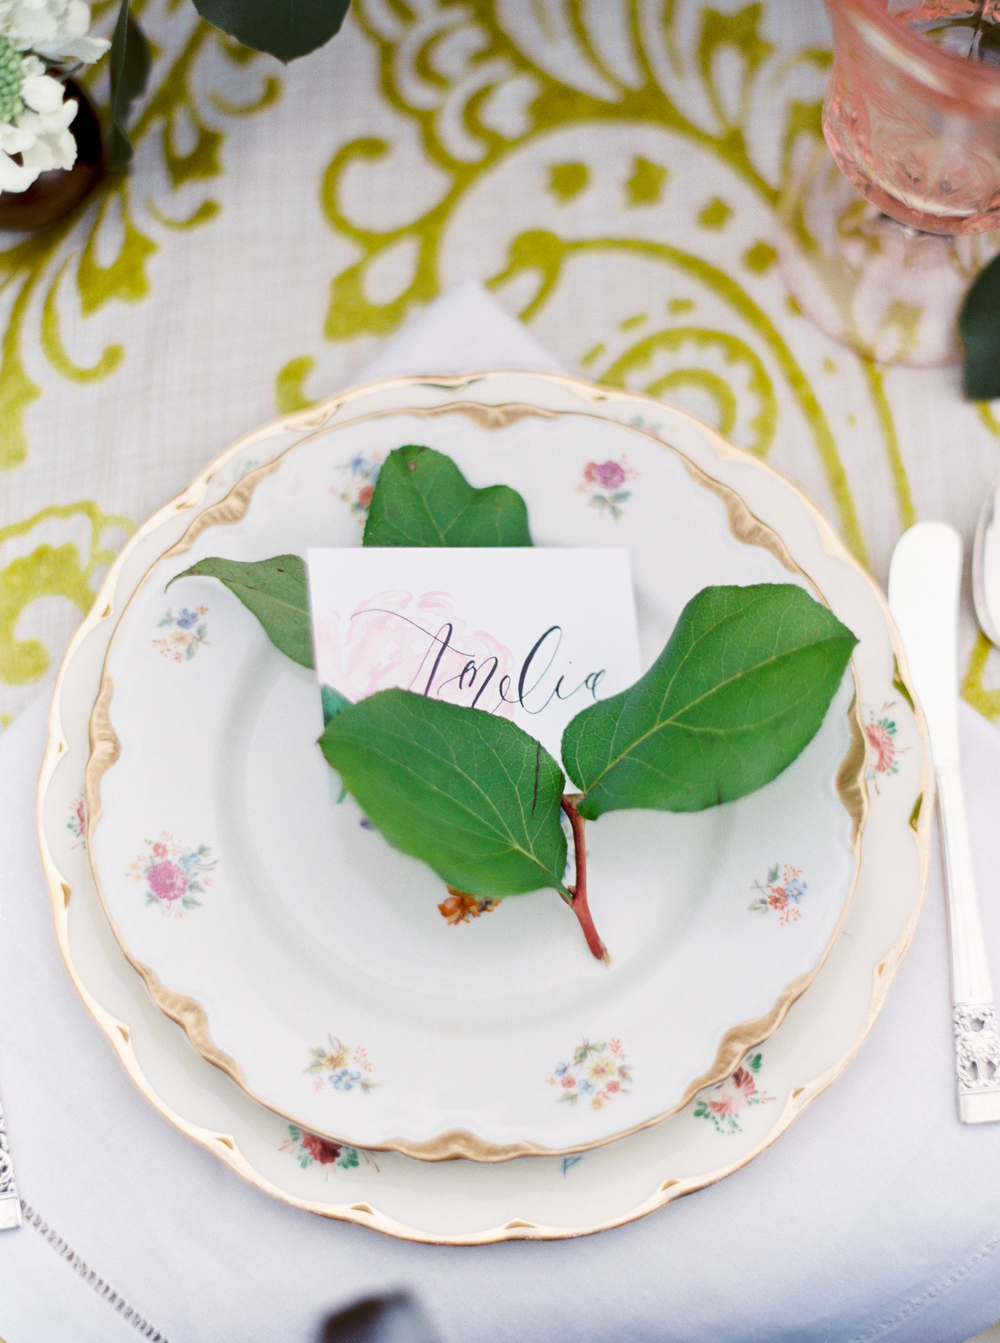 Watercolor and Calligraphy Place Card by Simply Jessica Marie Photographed by Shalyn Nelson for The School of Styling